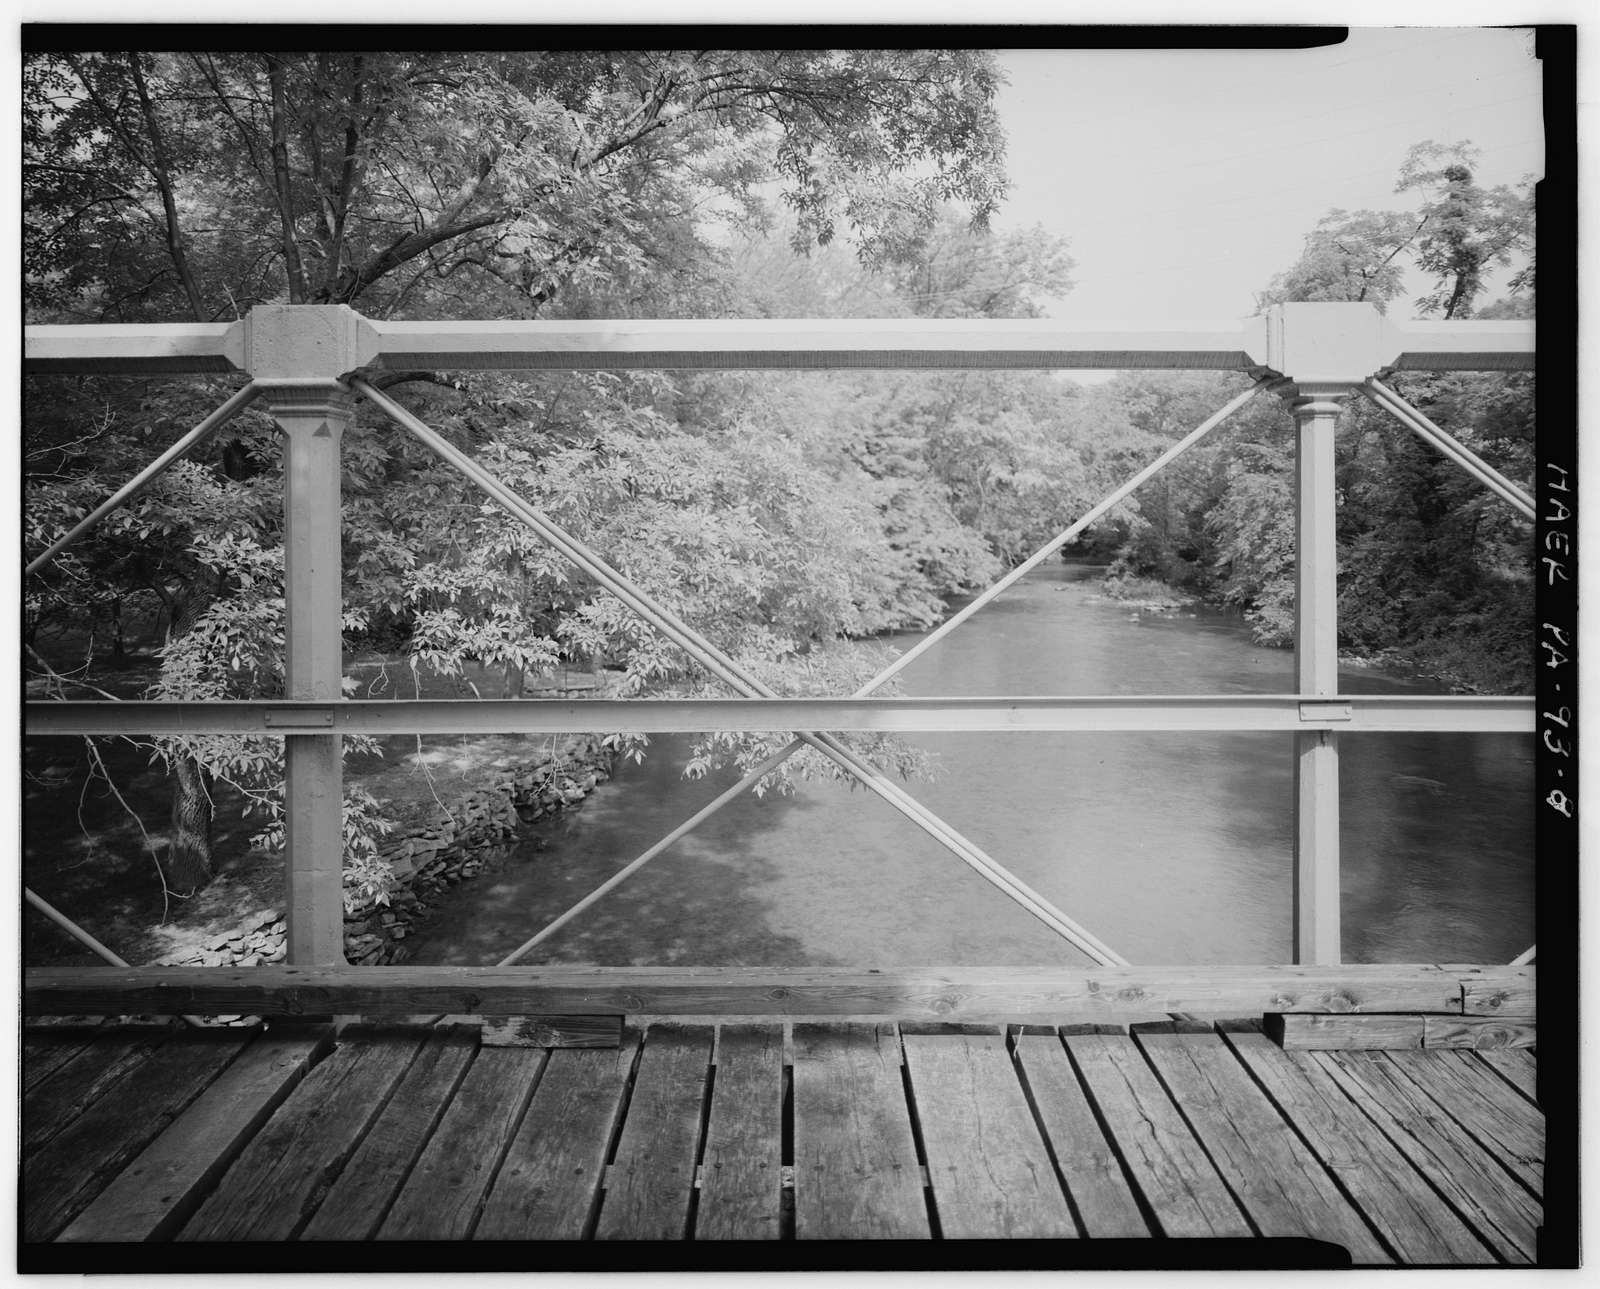 Old Mill Road Bridge, Spanning Saucon Creek, Old Mill Road, Hellertown, Northampton County, PA